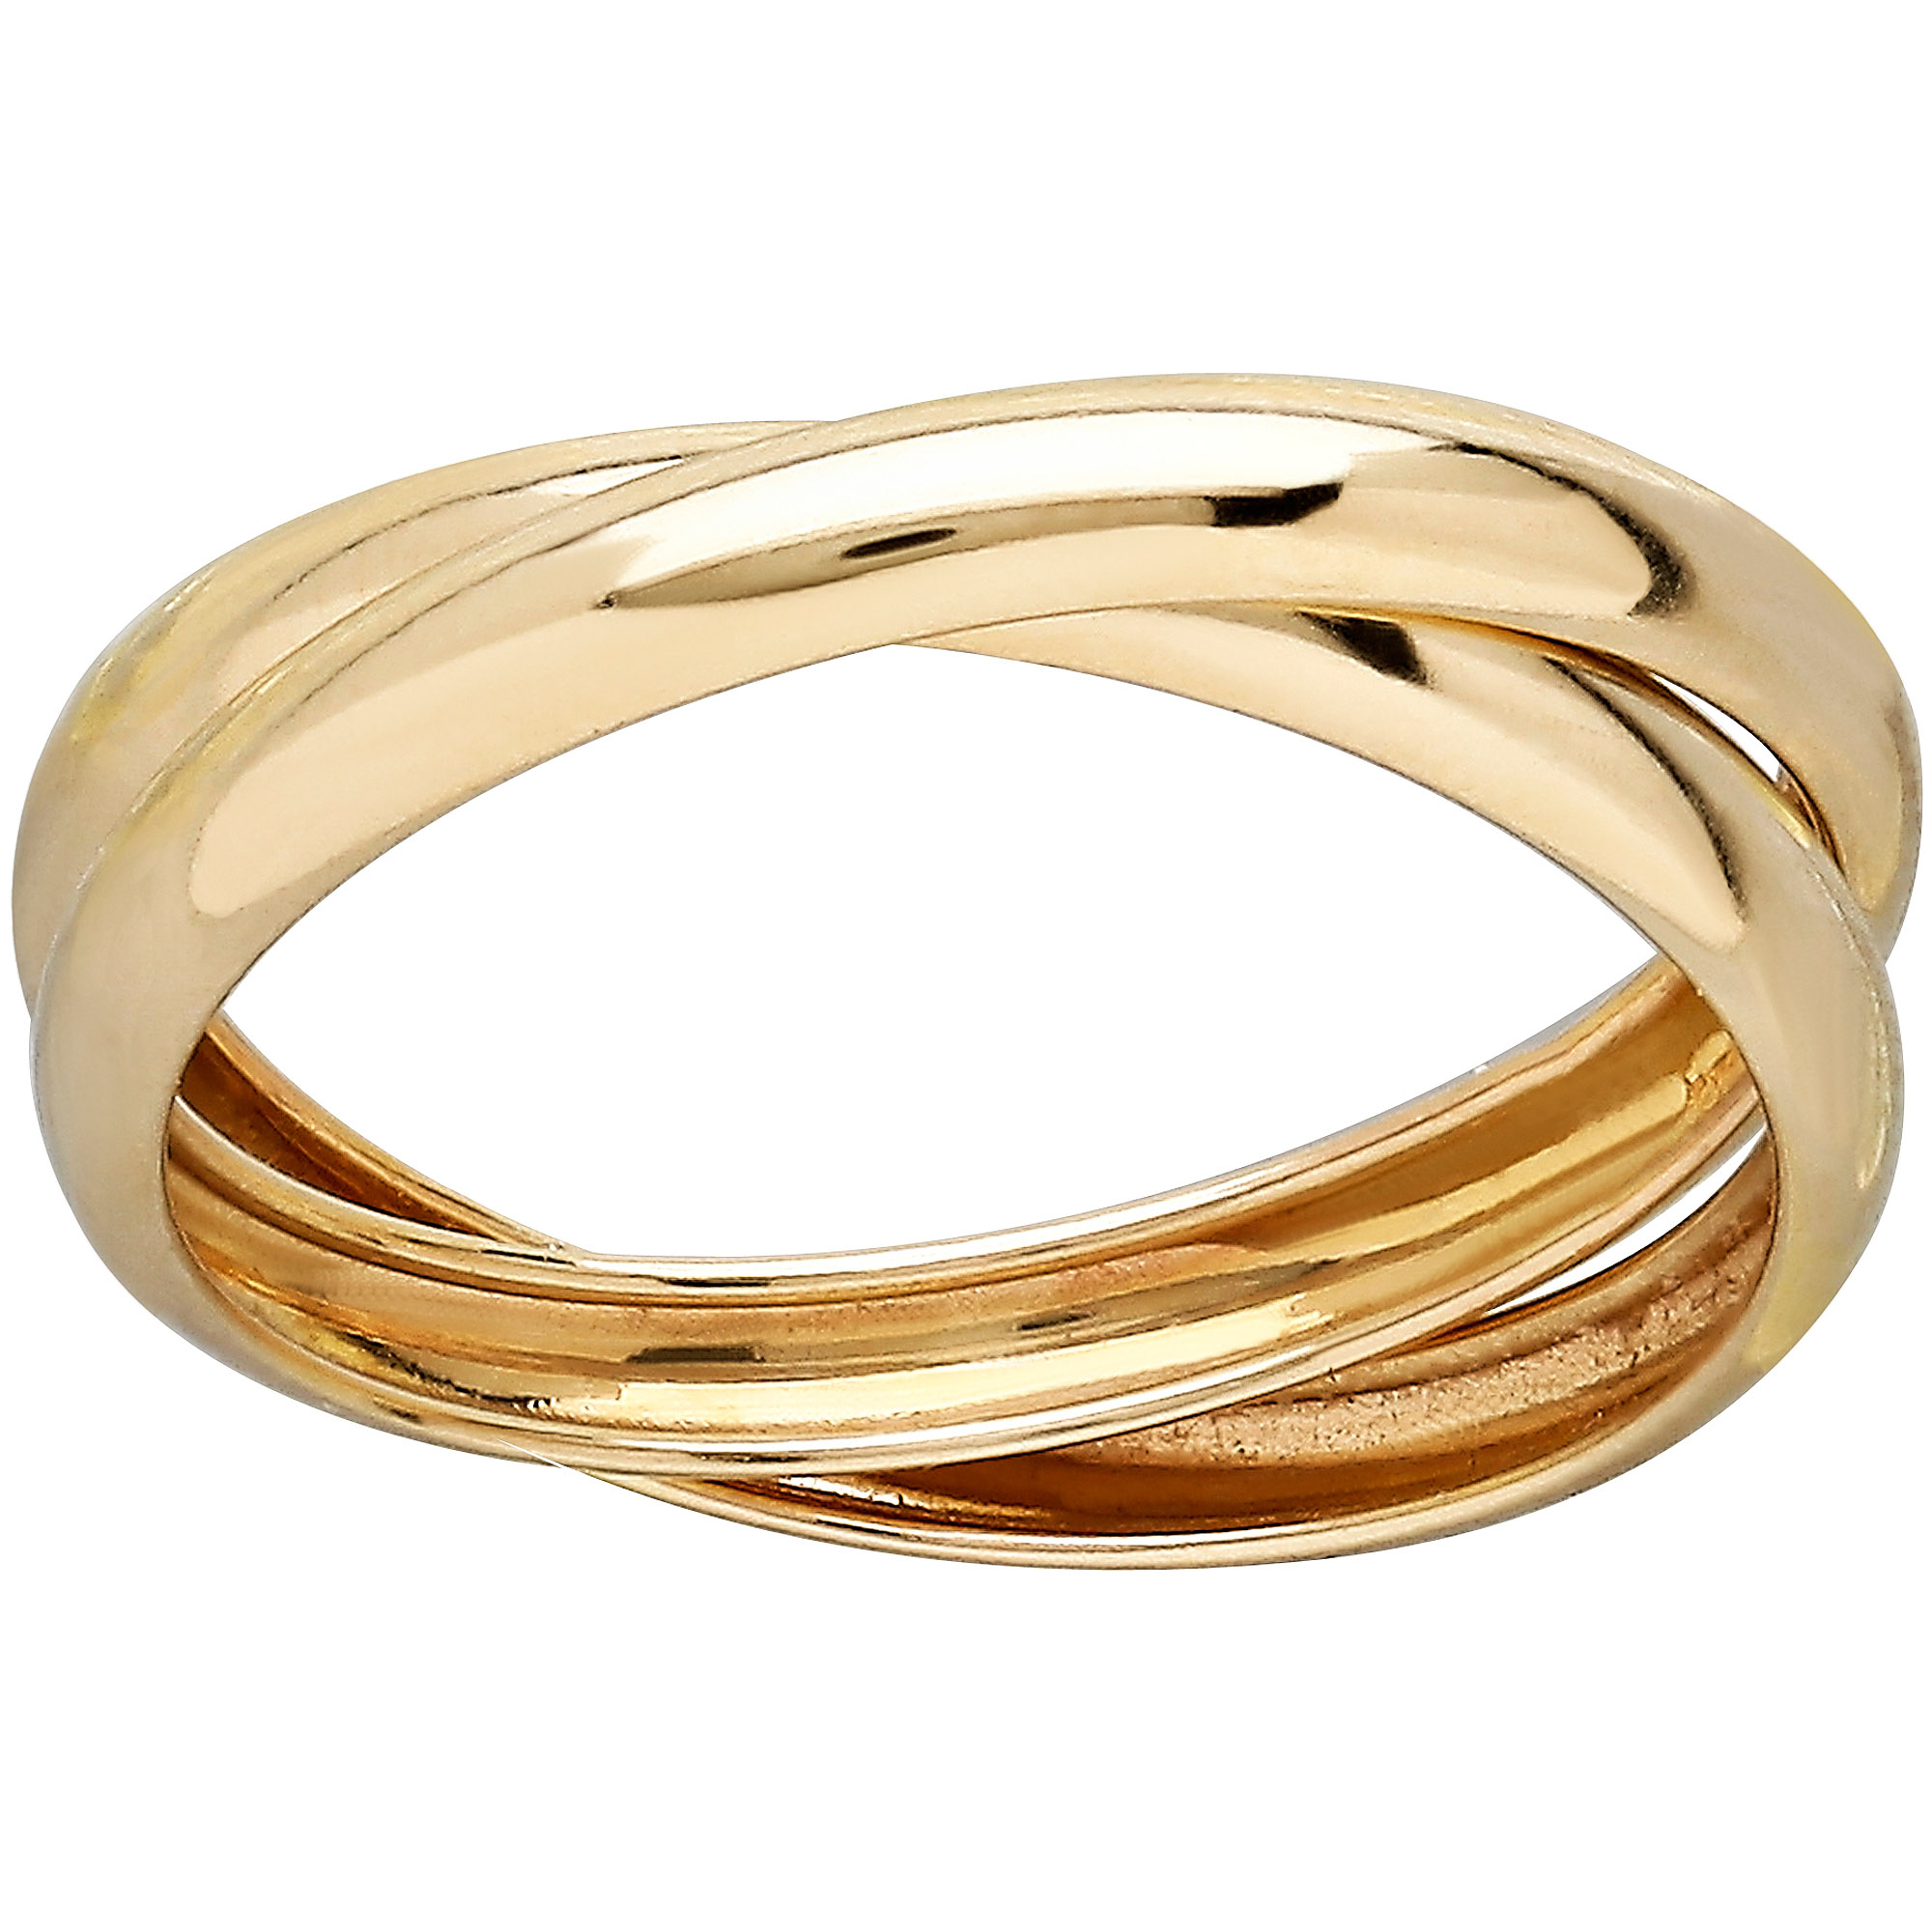 Simply Gold 10kt Yellow Gold Double Rolling Size 7 Ring